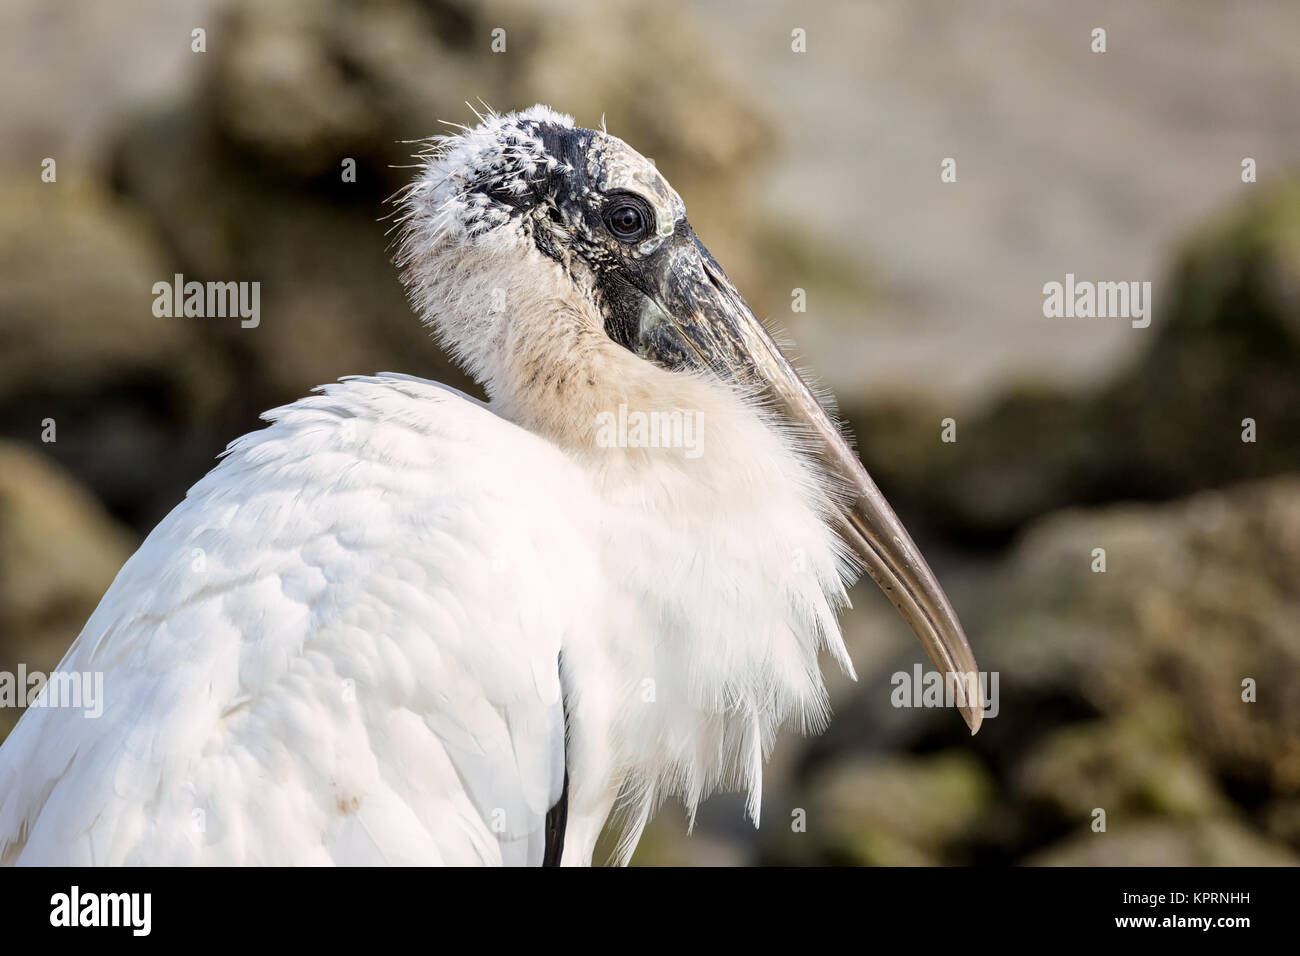 A portrait of a wild stork in Florida, USA. Color Image, Day - Stock Image